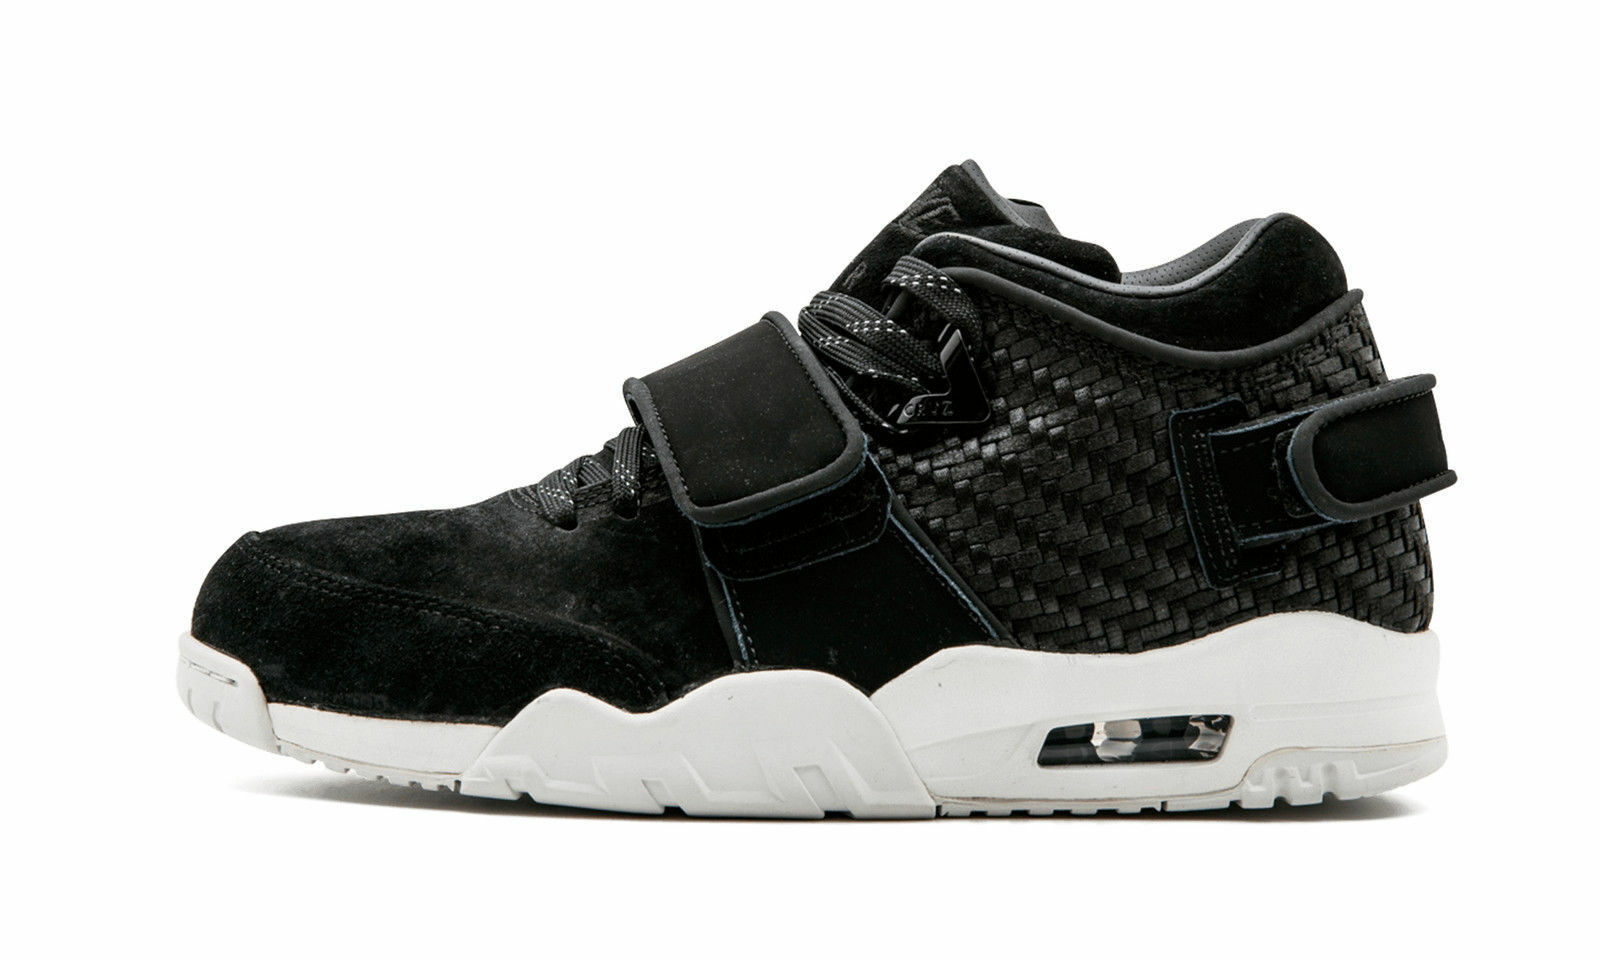 MEN'S NIKE AIR TR. V. CRUZ SHOES black white 777535 004 MSRP Price reduction Special limited time